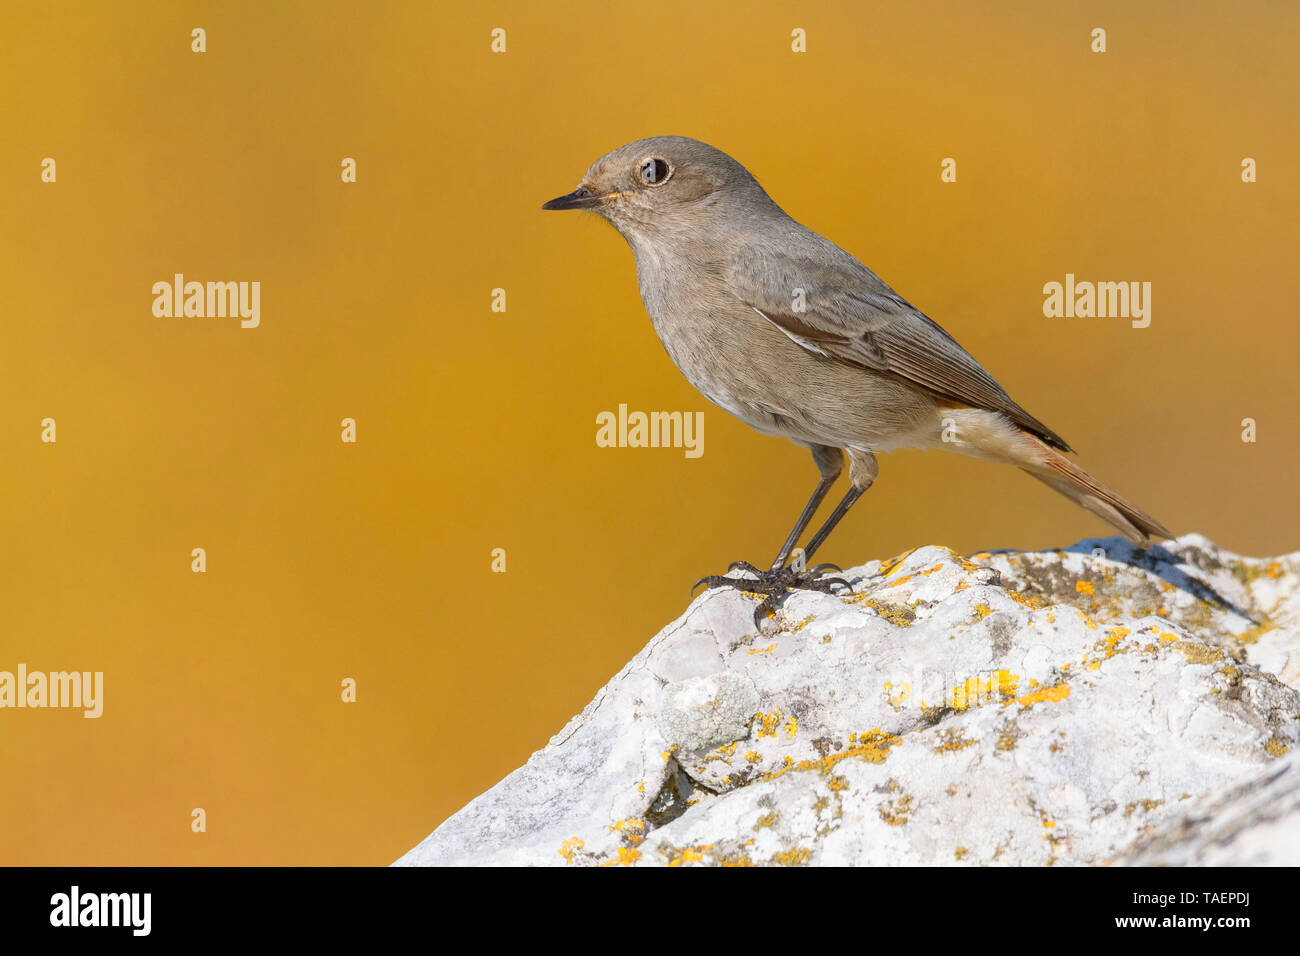 Black Redstart (Phoenicurus ochruros gibraltariensis), Standing on a rock, Campania, Italy, Stock Photo